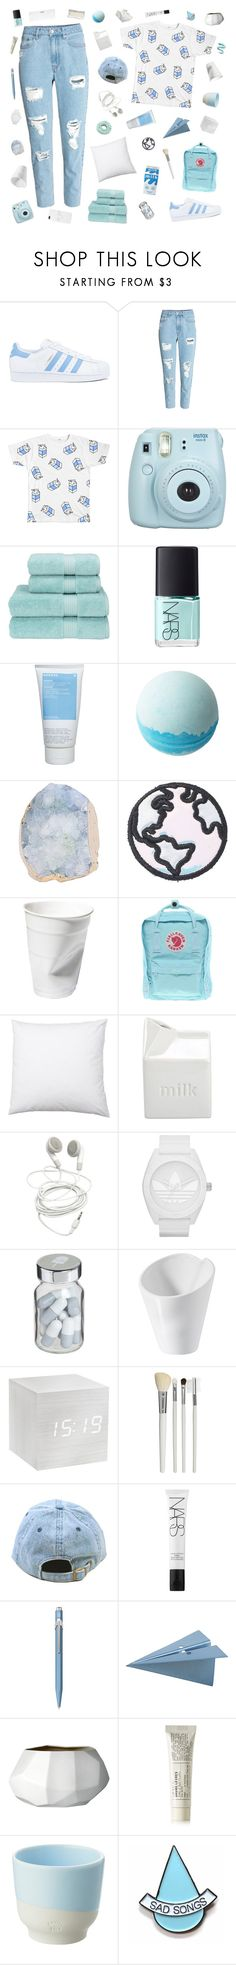 """INTERDIGITATE"" by cleobluesky ❤ liked on Polyvore featuring adidas, H&M, Fujifilm, Christy, NARS Cosmetics, Korres, Disney, Stoney Clover Lane, Fjällräven and BIA Cordon Bleu"